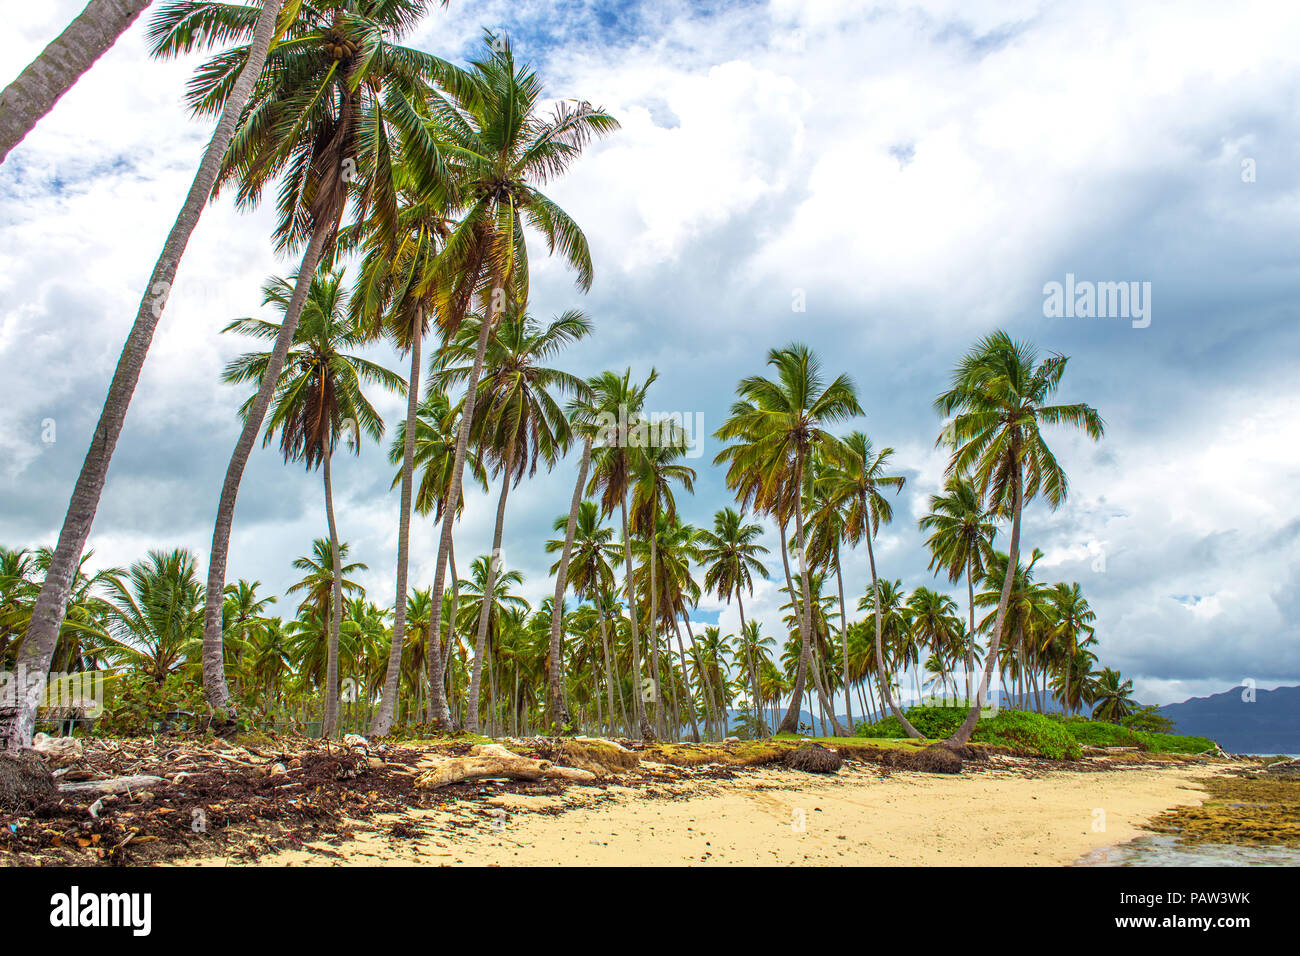 Tropical beach with high palm trees, sand and seaweed on background of grey sky with clouds. Caribbean storm - Stock Image